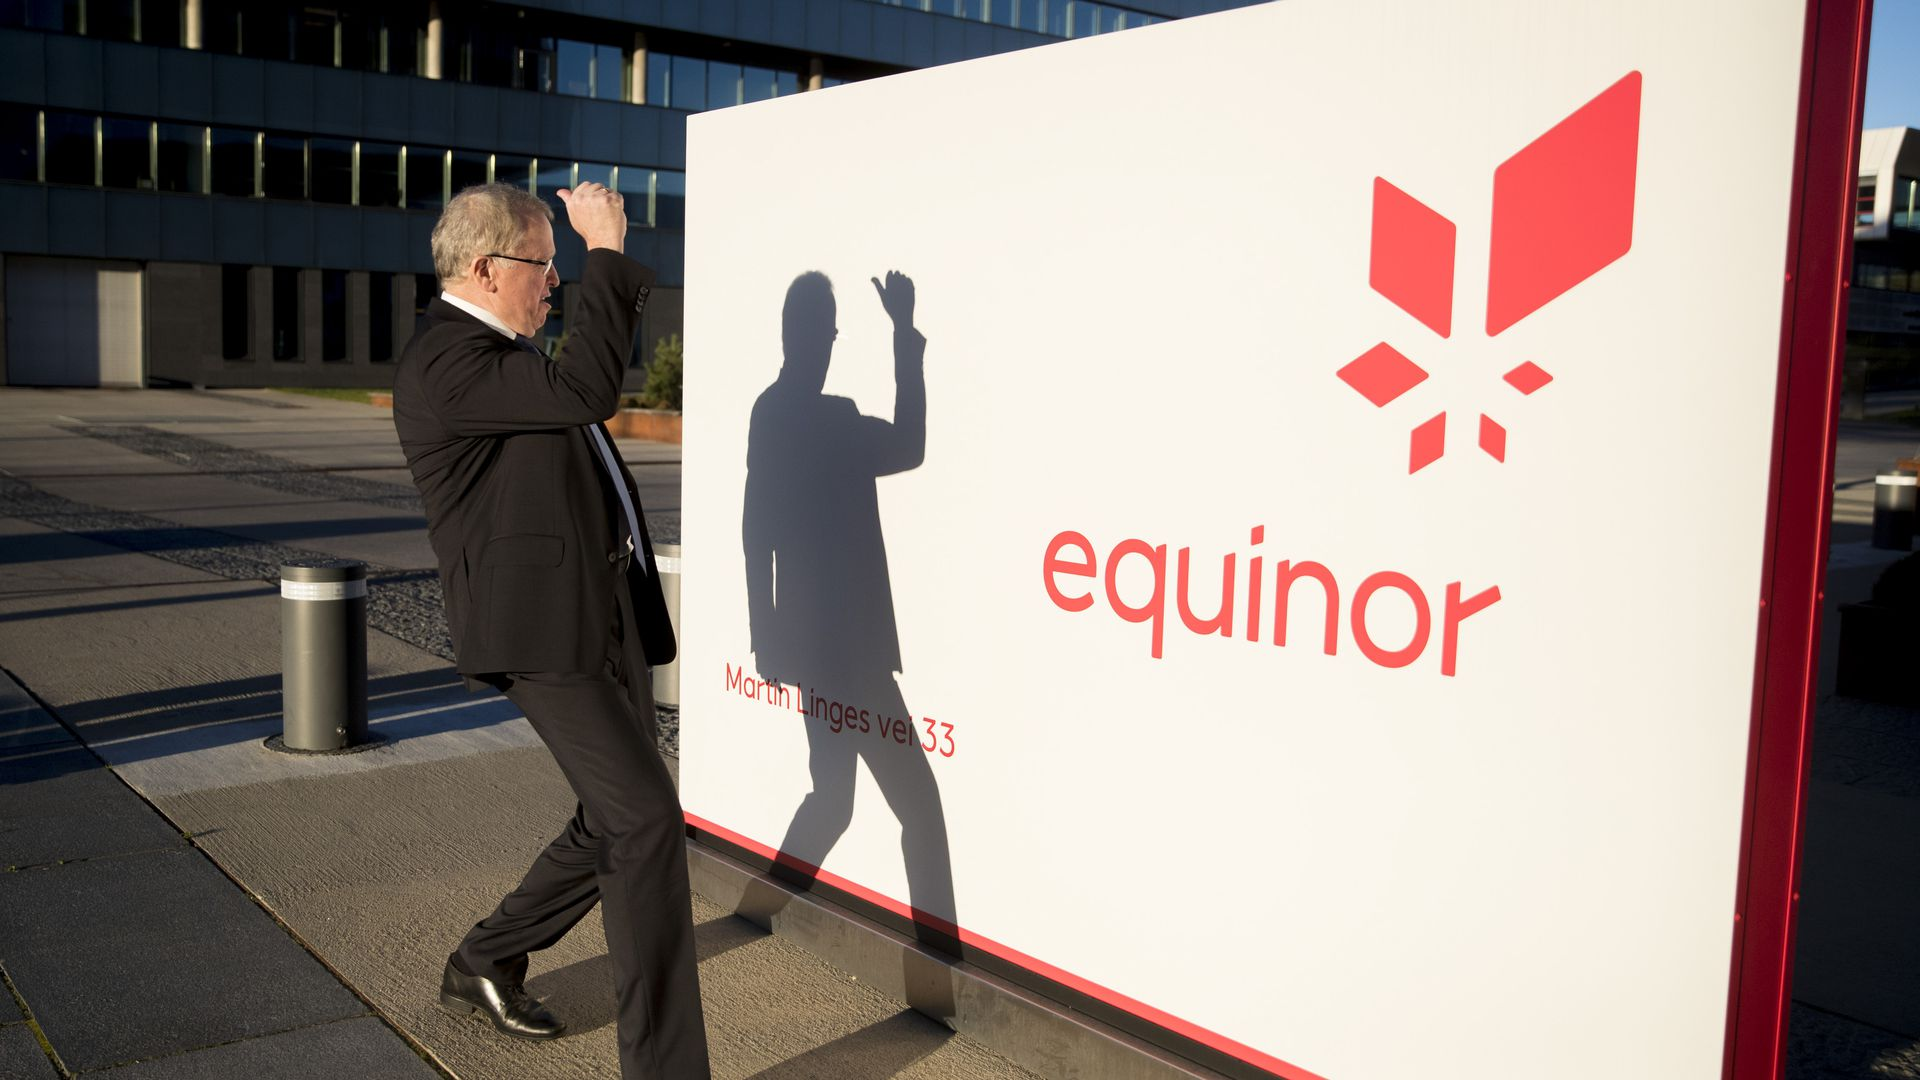 Equinor CEO looking at his shadow on an Equinor sign.